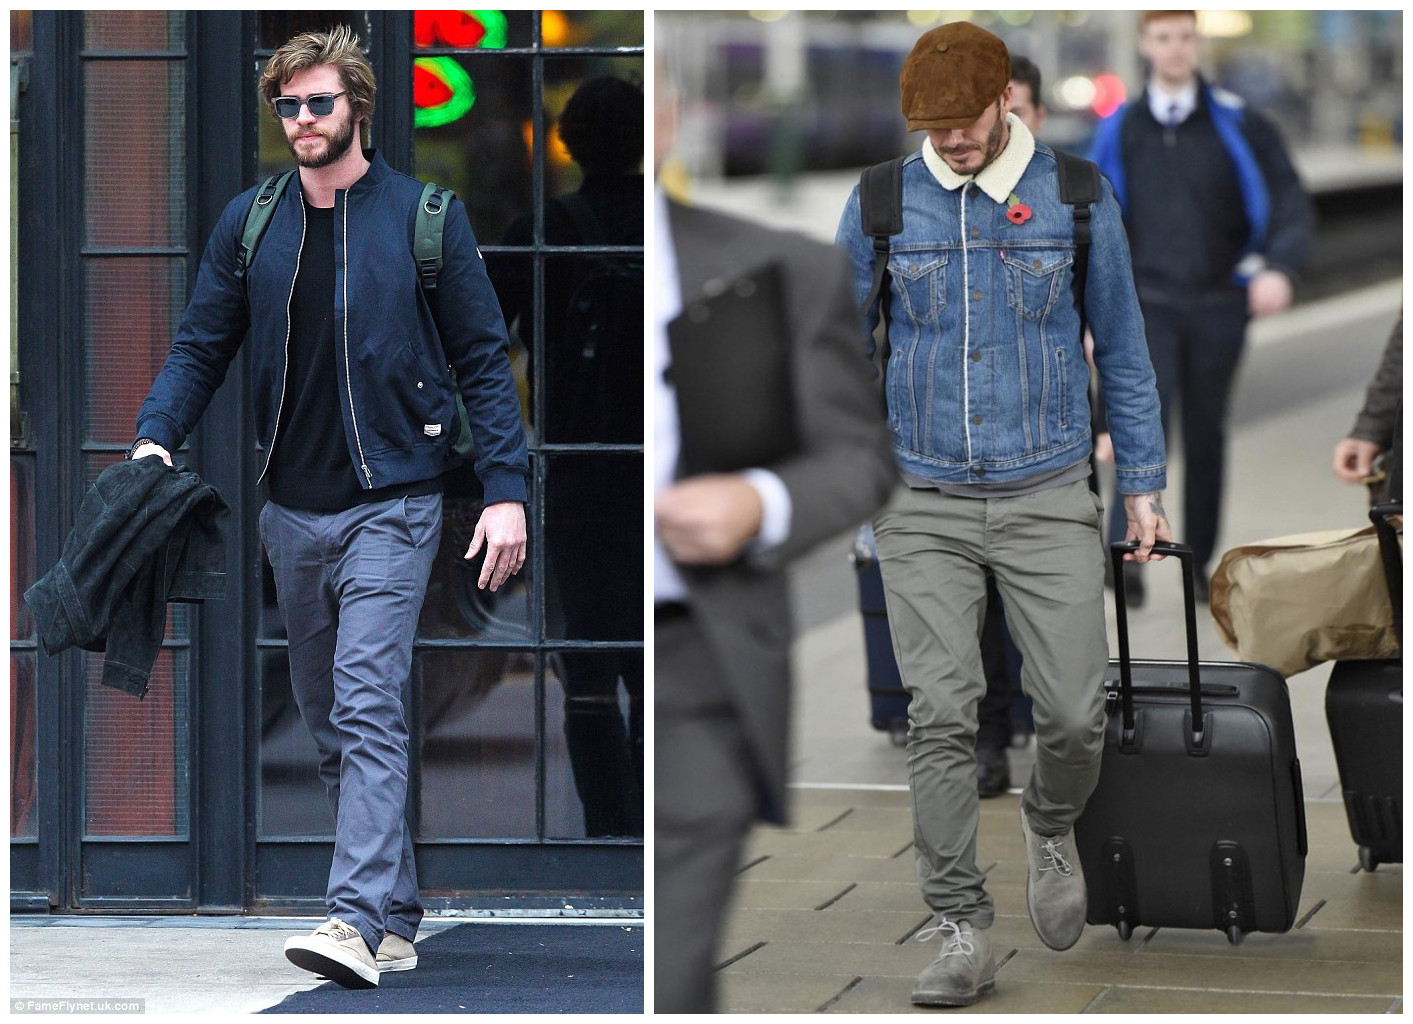 67f03aa53065 Ryan Gosling inspires us a lot. He rocks a canvas backpack by wearing a  plain T-shirt and jeans with boots